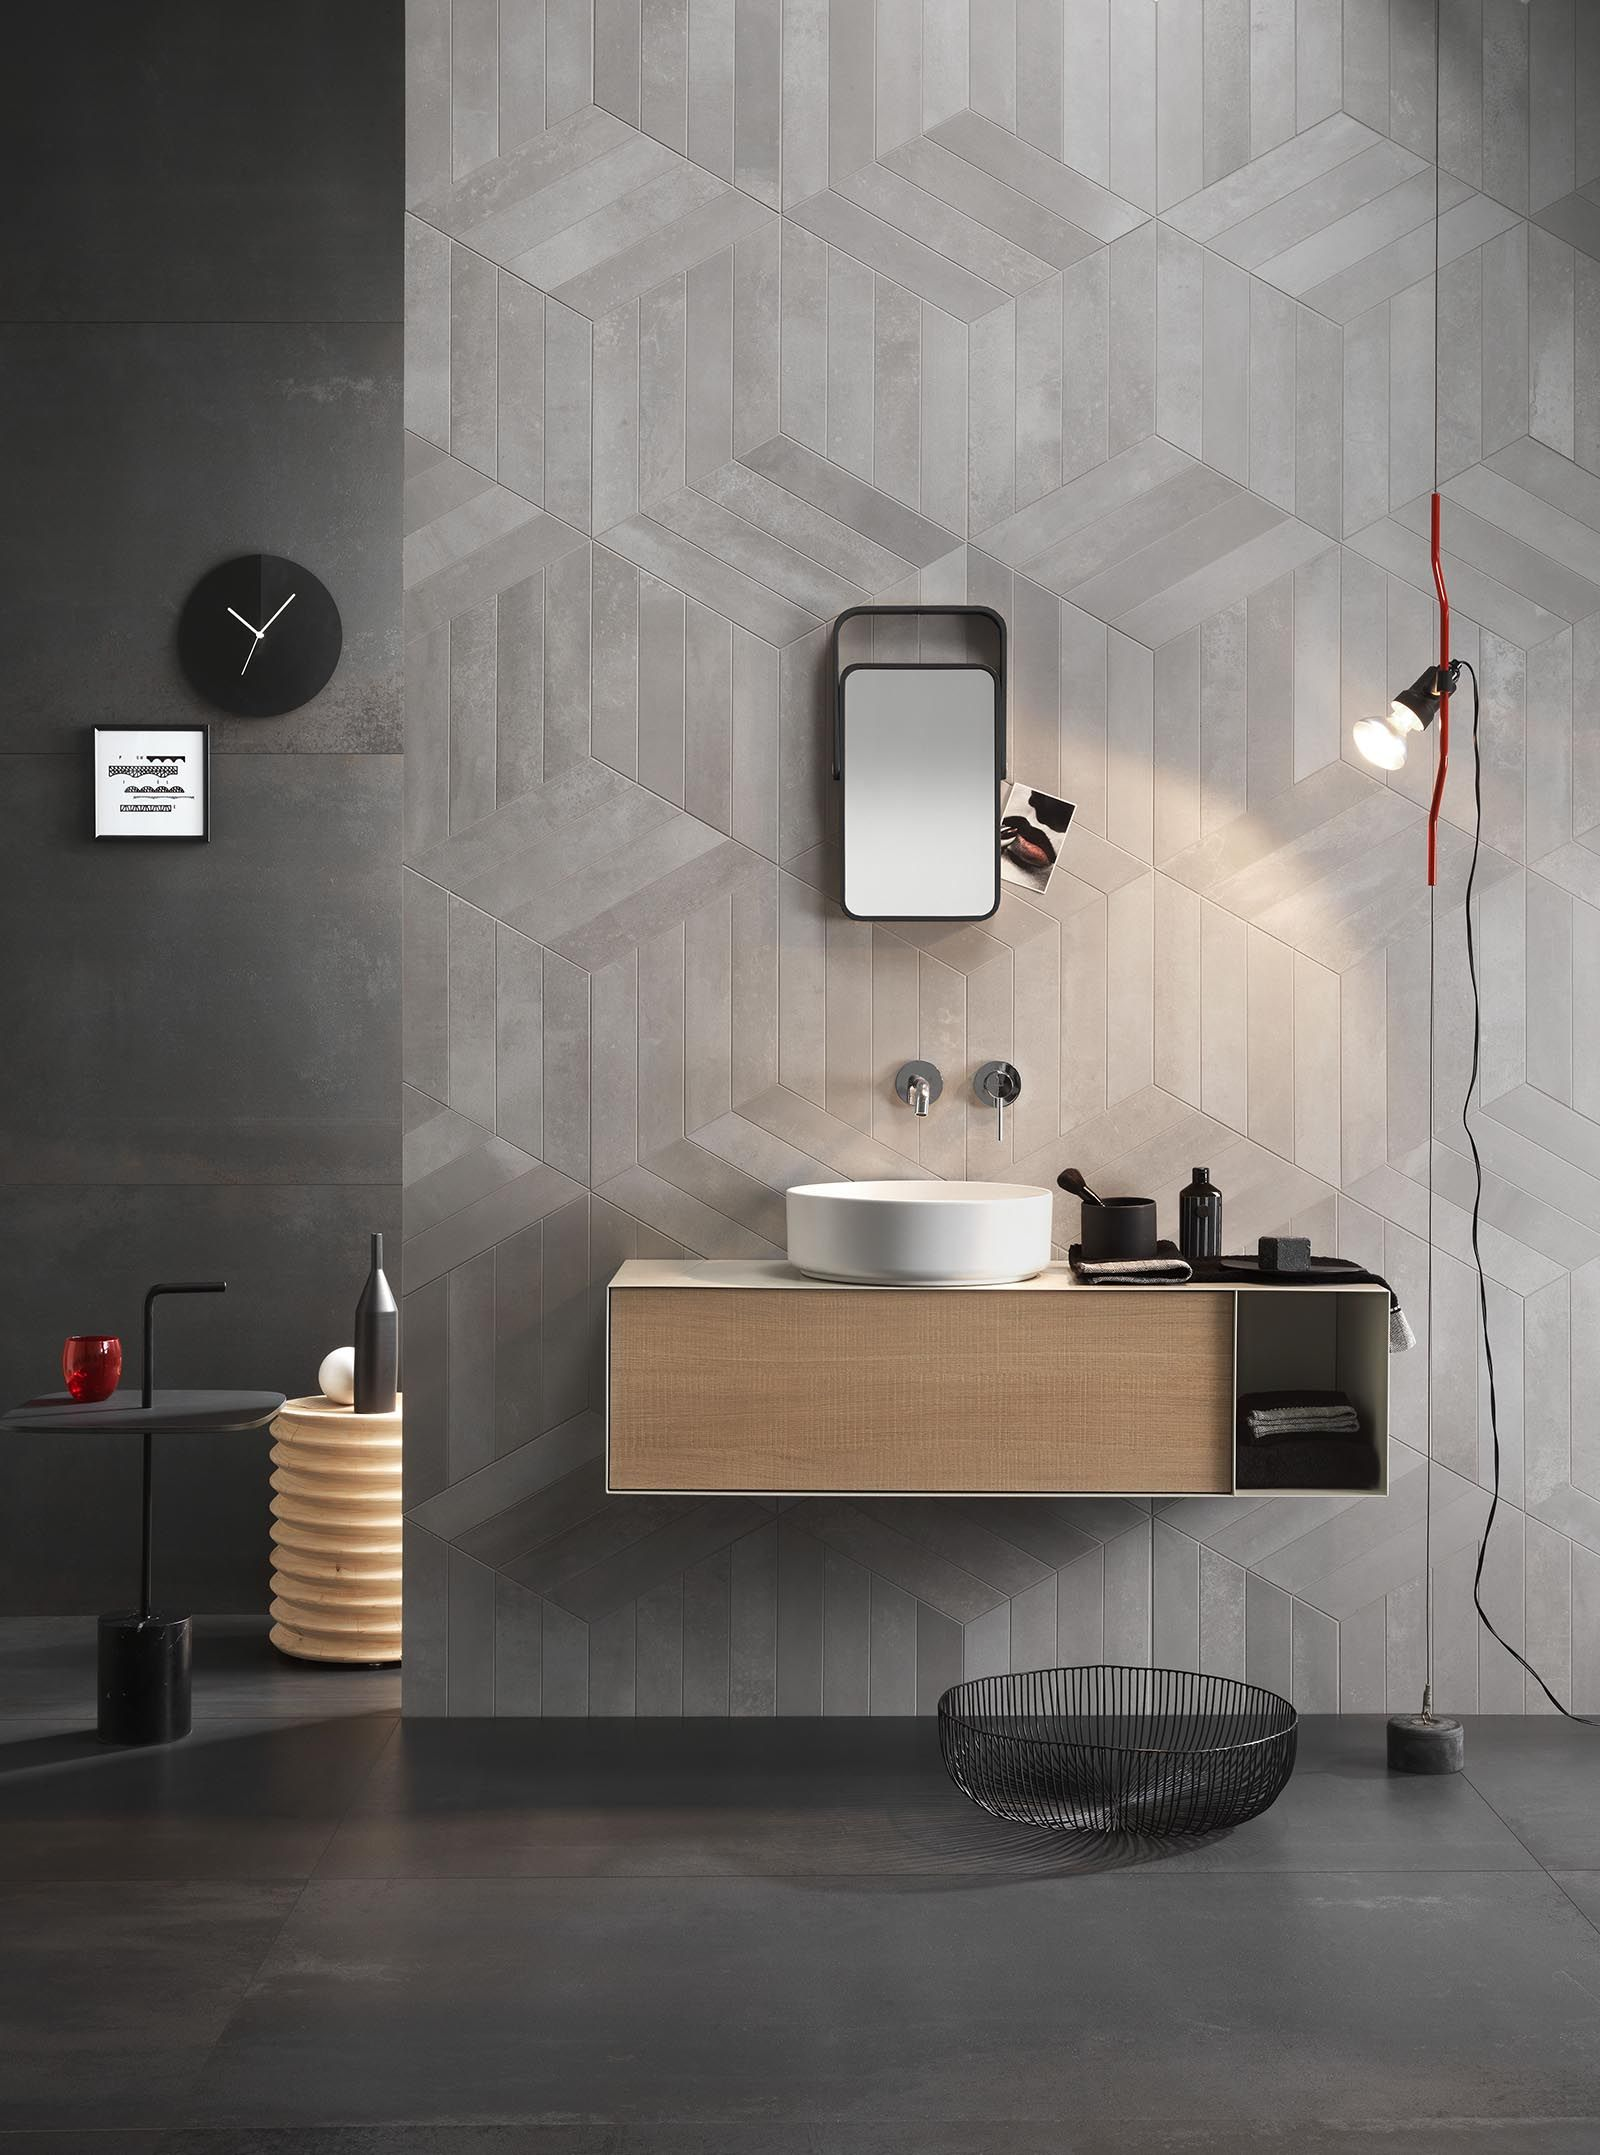 Metal Effects Large Format Tile Tiles Lighted Bathroom Mirror